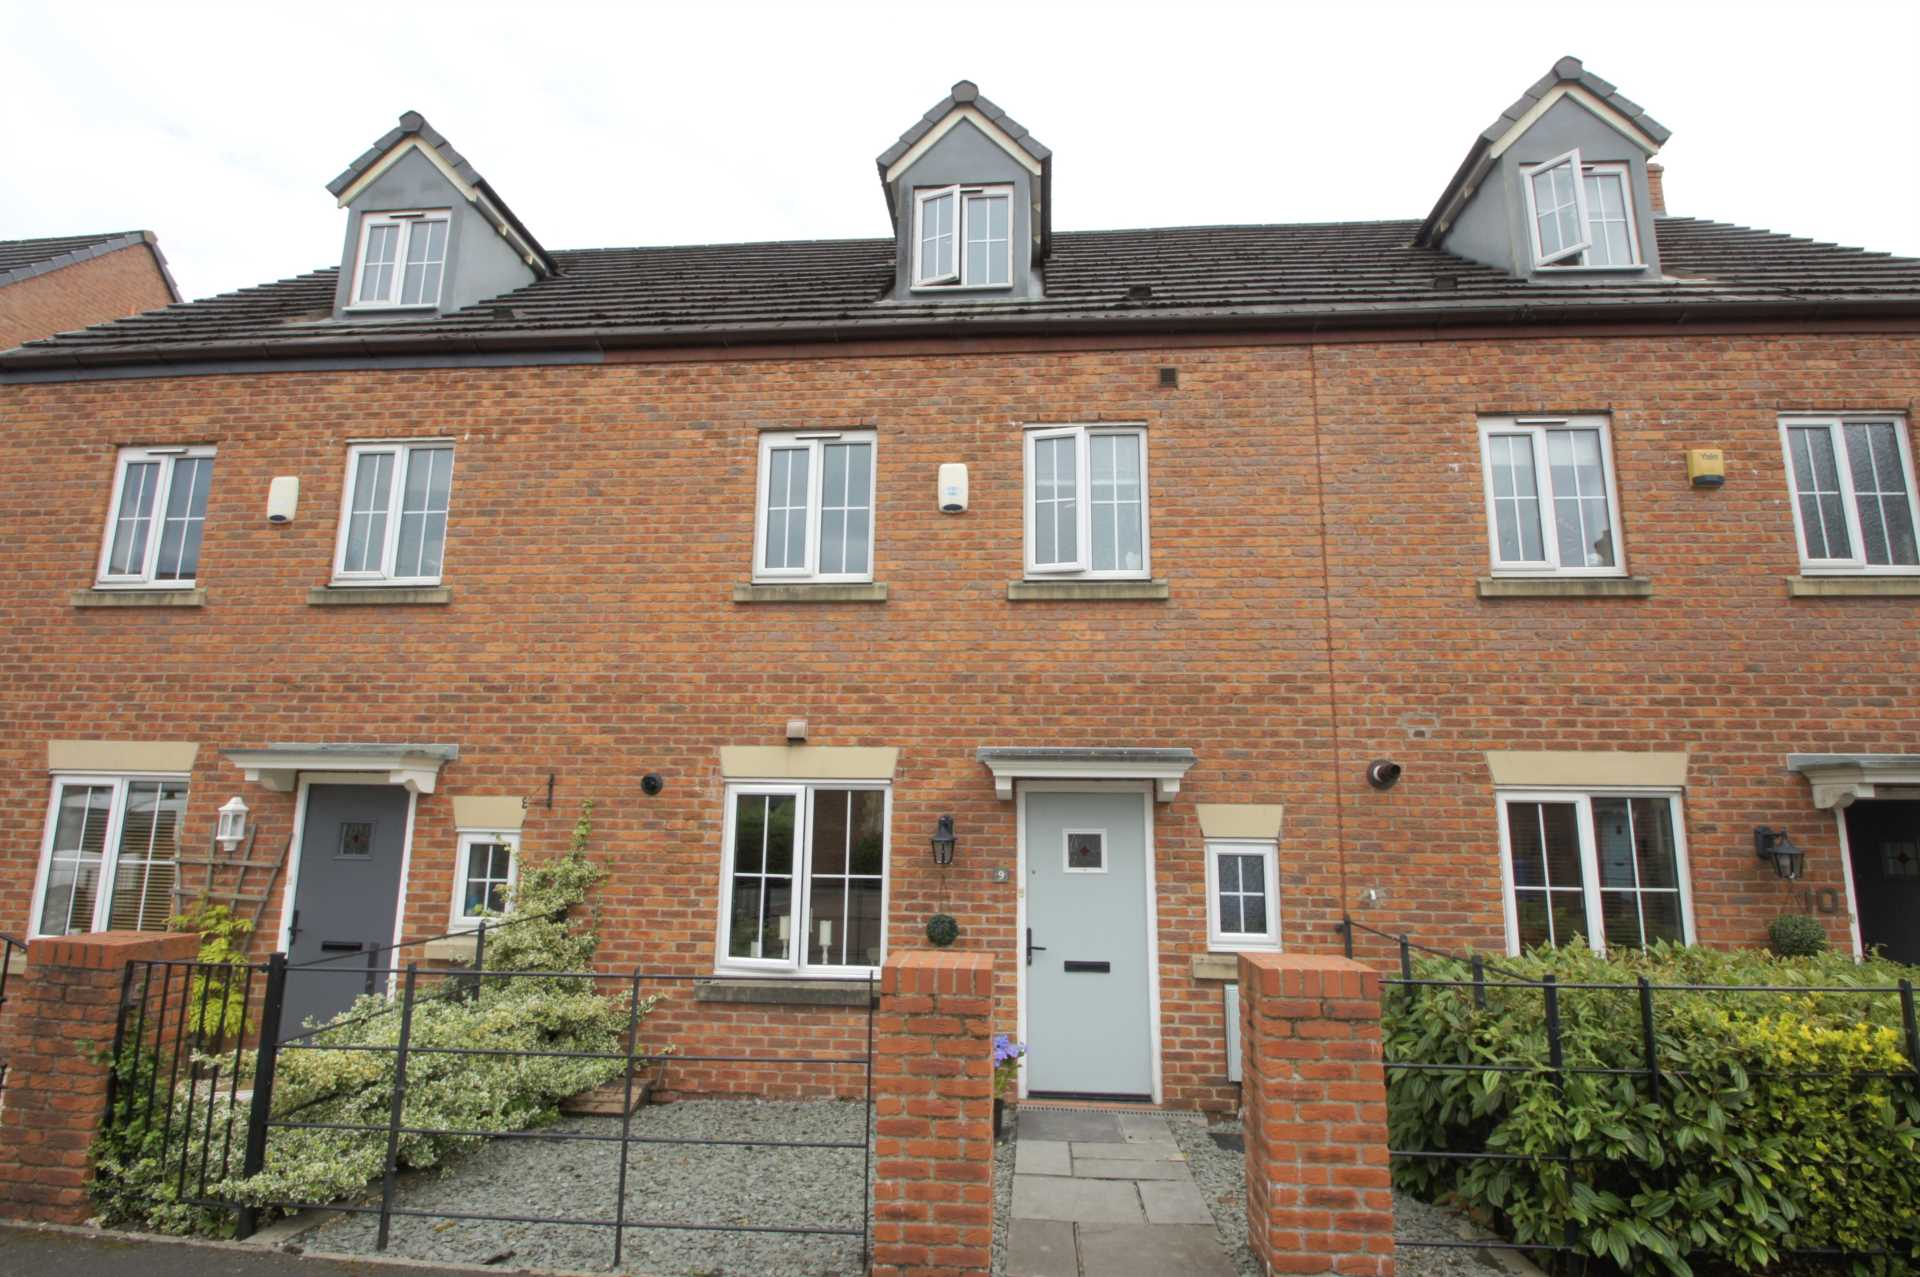 Redman Casey Estate Agency - 4 Bedroom Town House, Maytree Court, Adlington